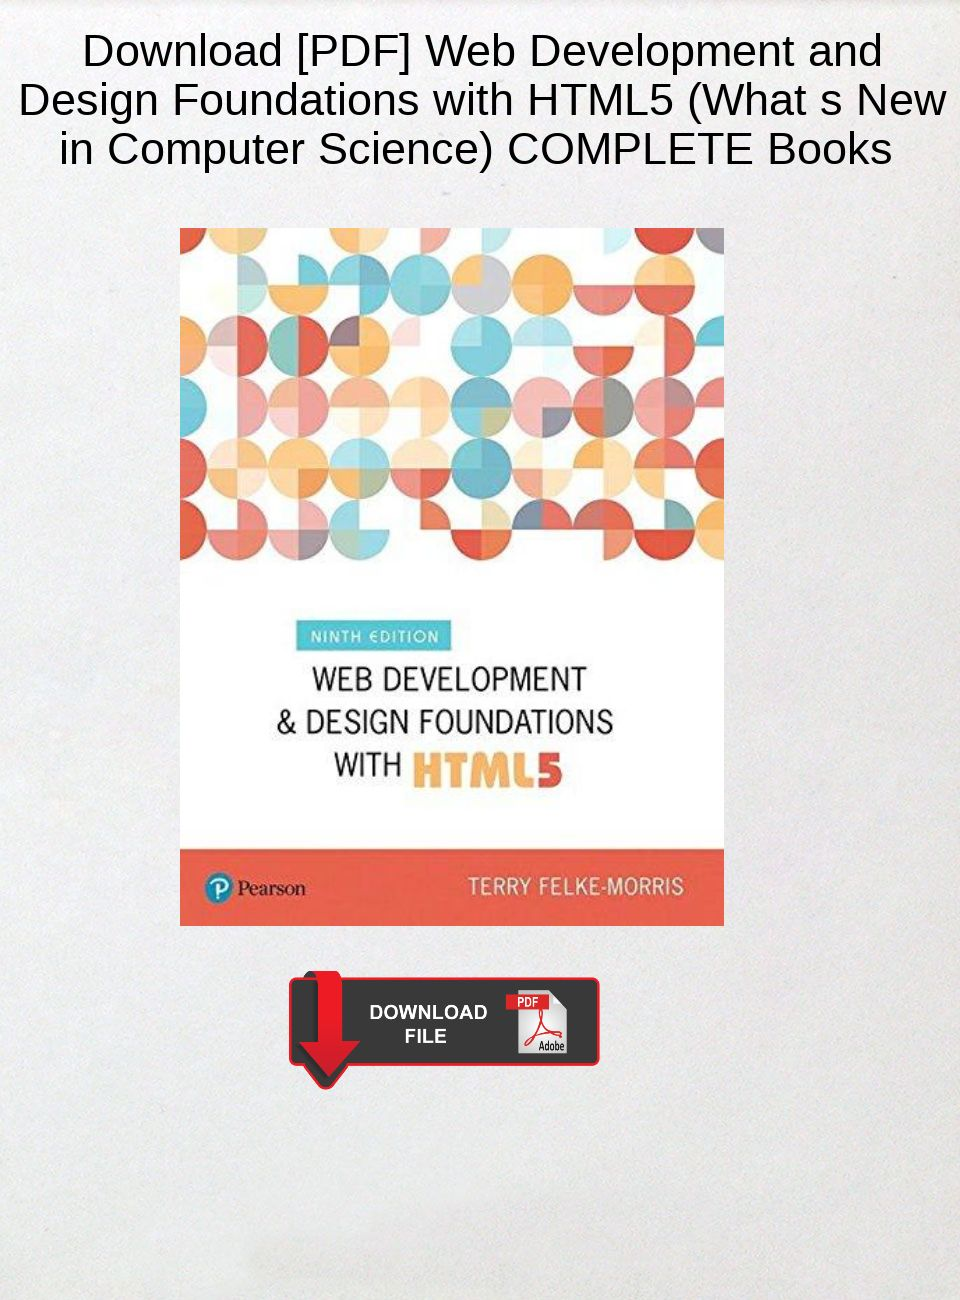 Download Pdf Web Development And Design Foundations With Html5 What S New In Computer Science C Download Epub Pdf Glogster Edu Interactive Multimedia Posters